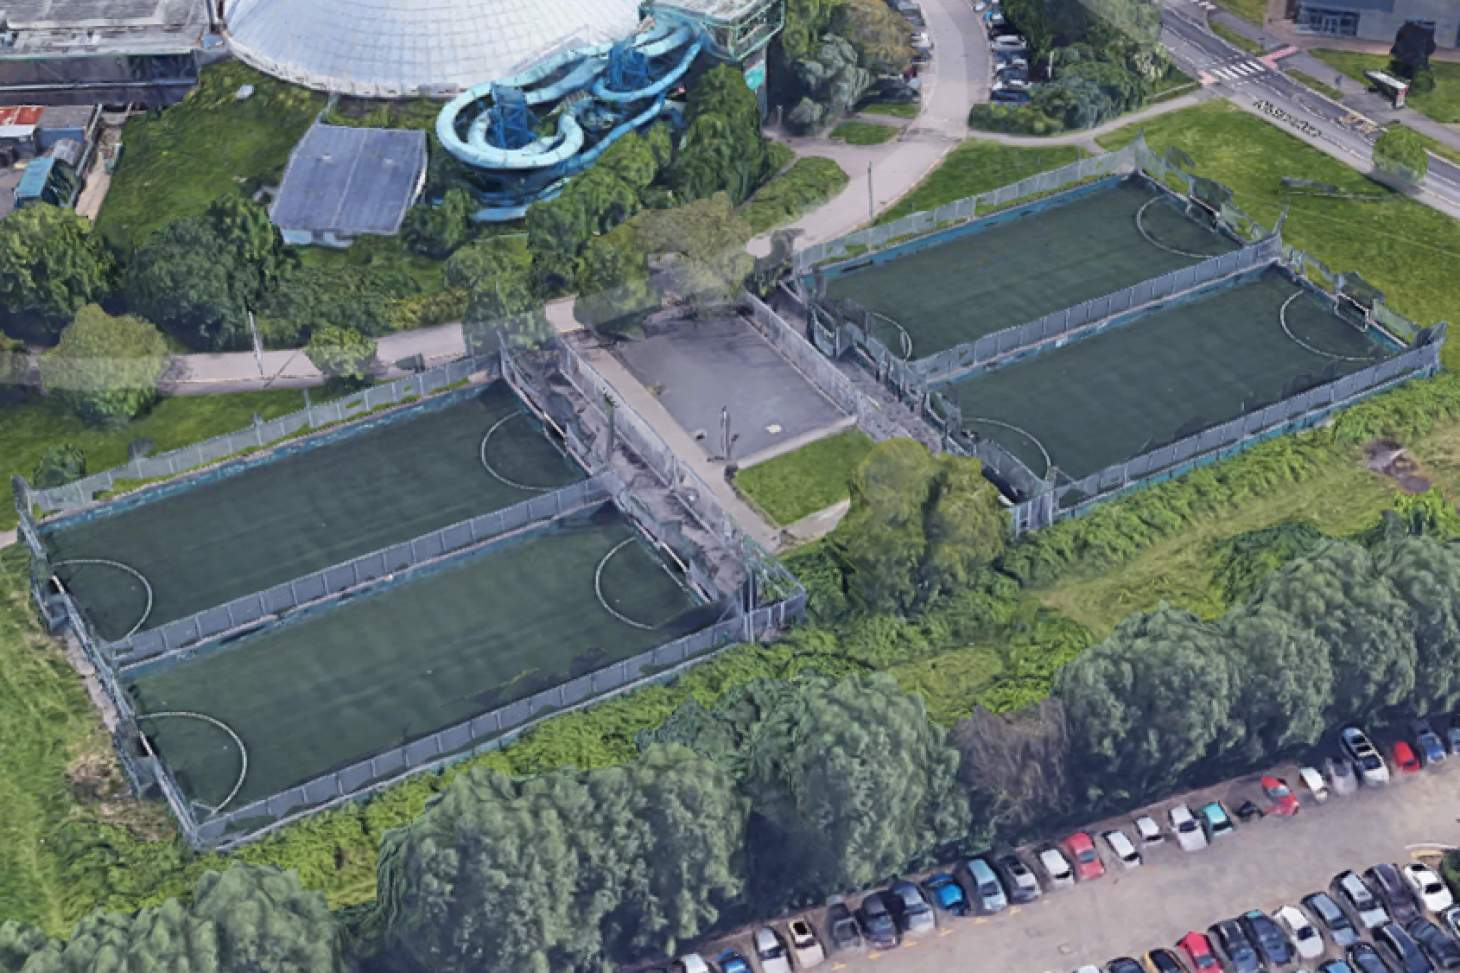 Oasis Leisure Centre 5 a side | 3G Astroturf football pitch